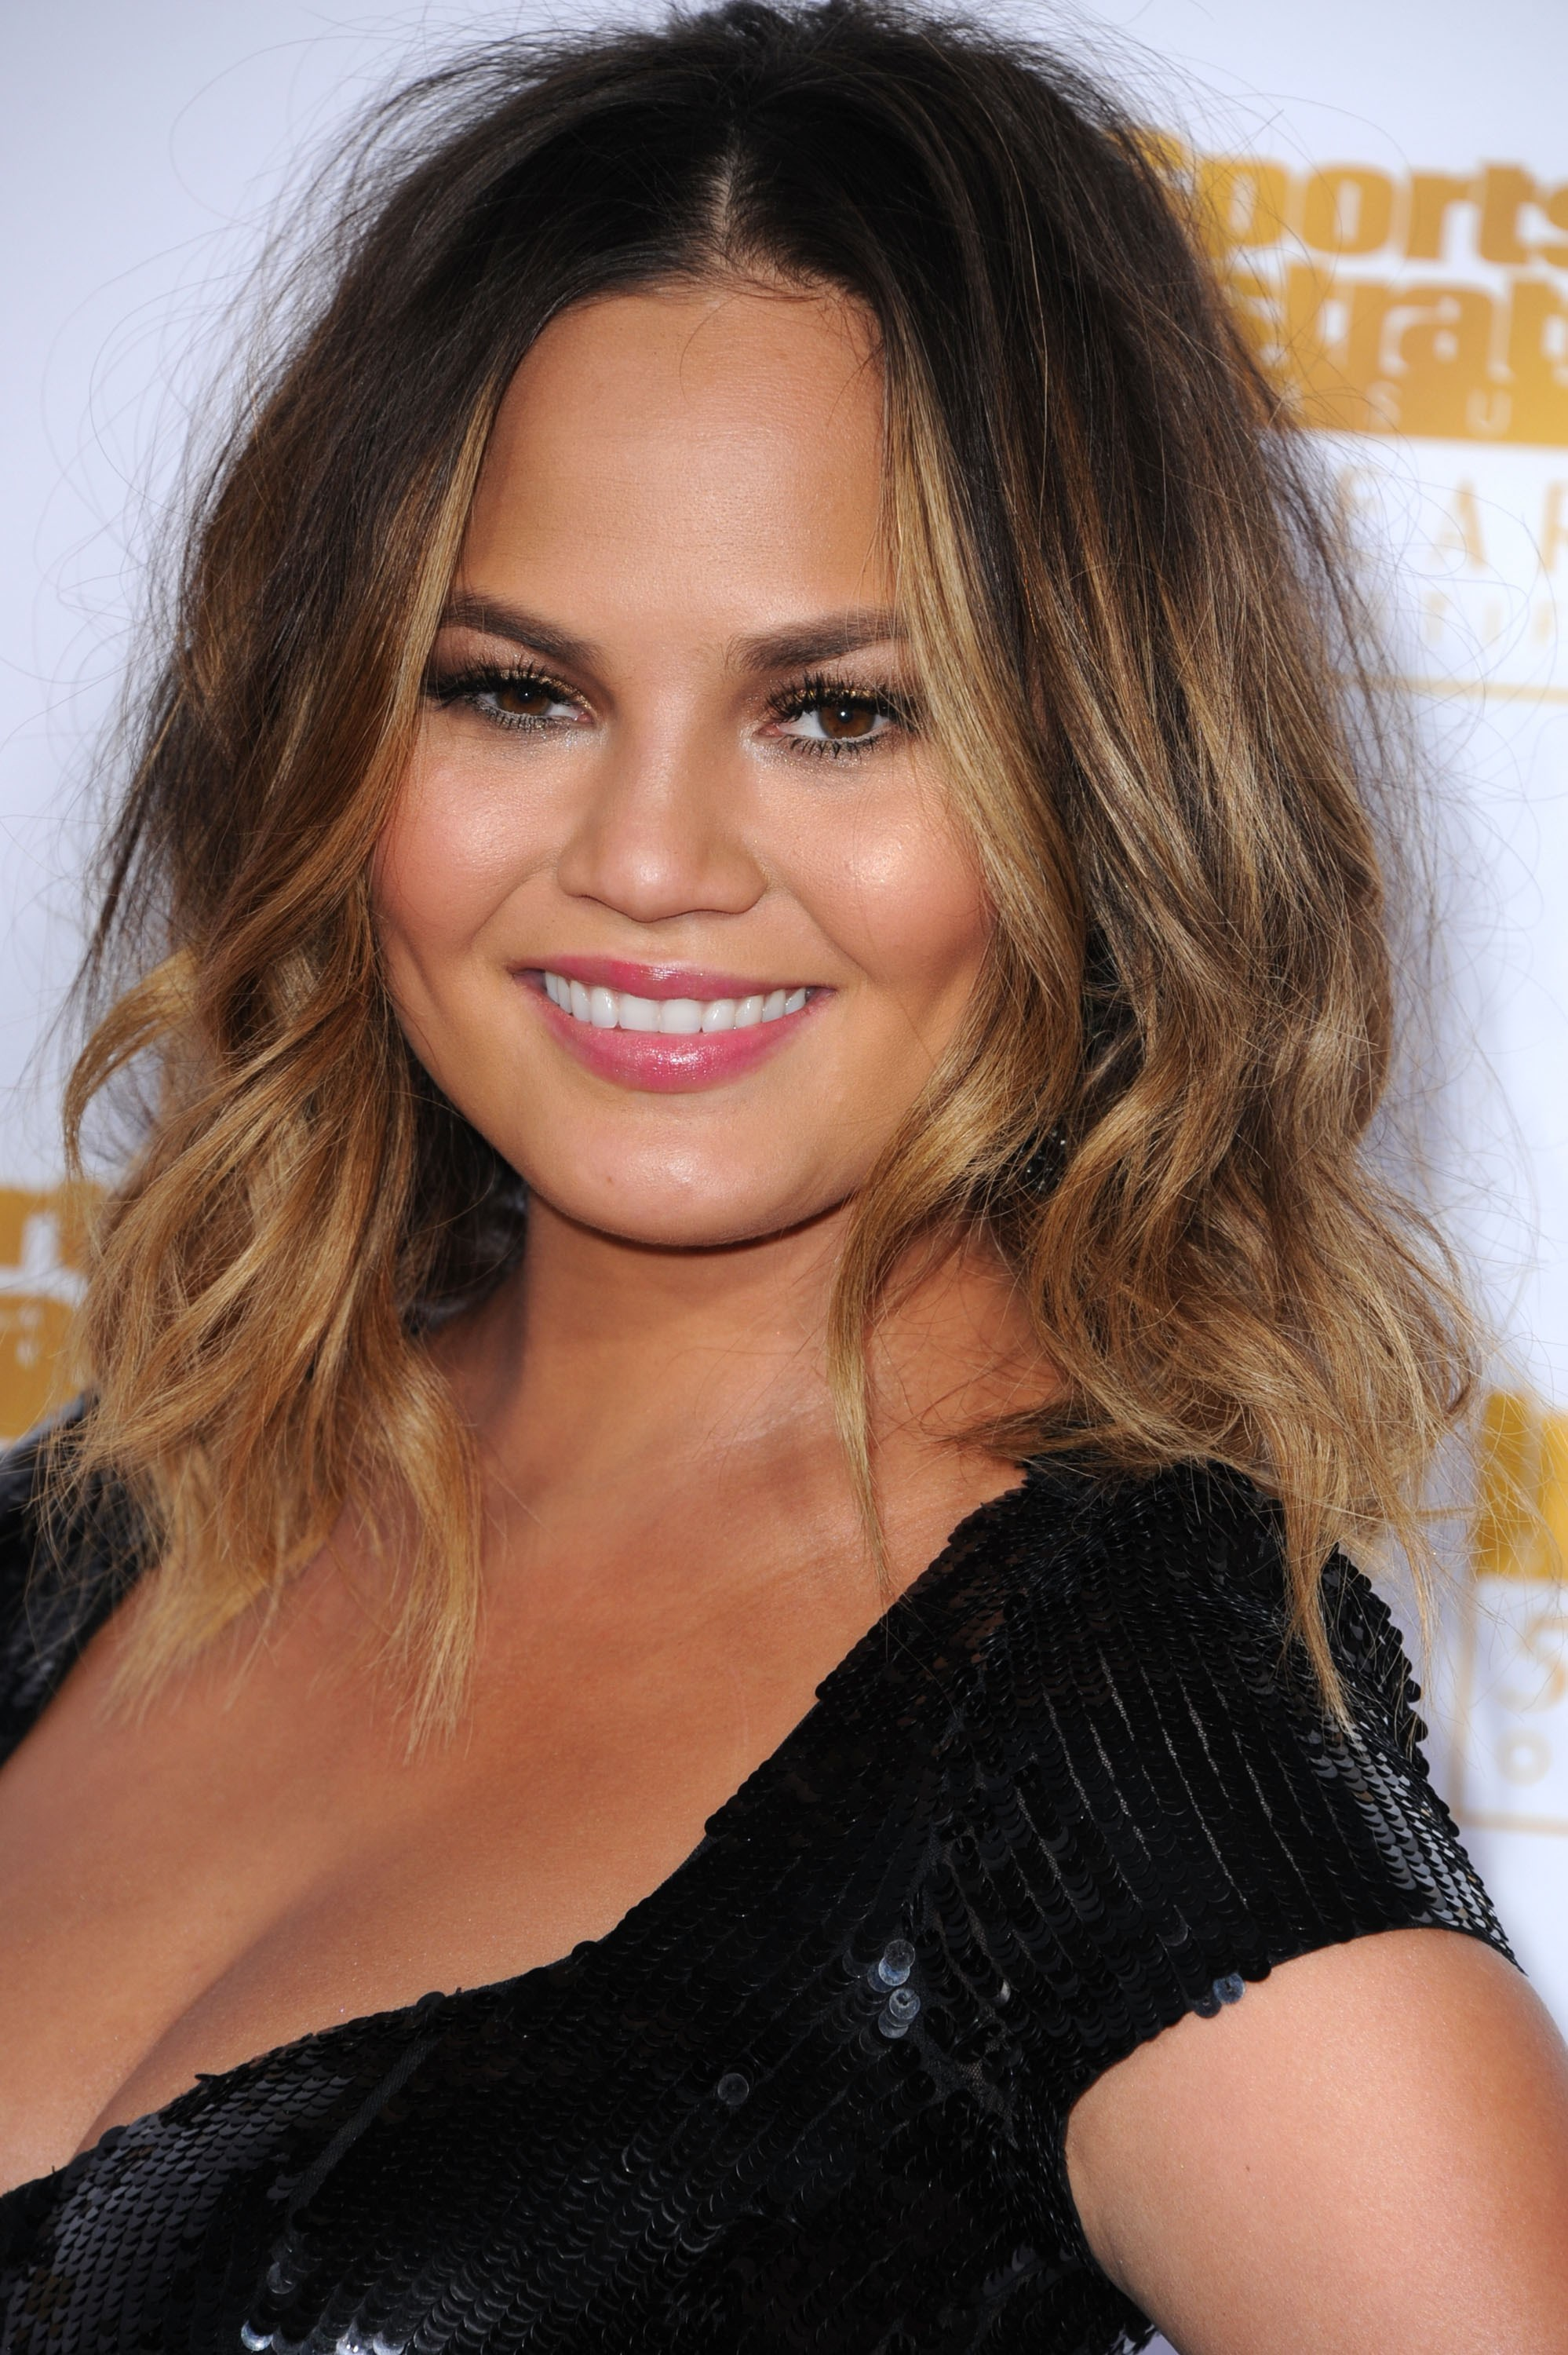 Chrissy Teigen Known People Famous People News And